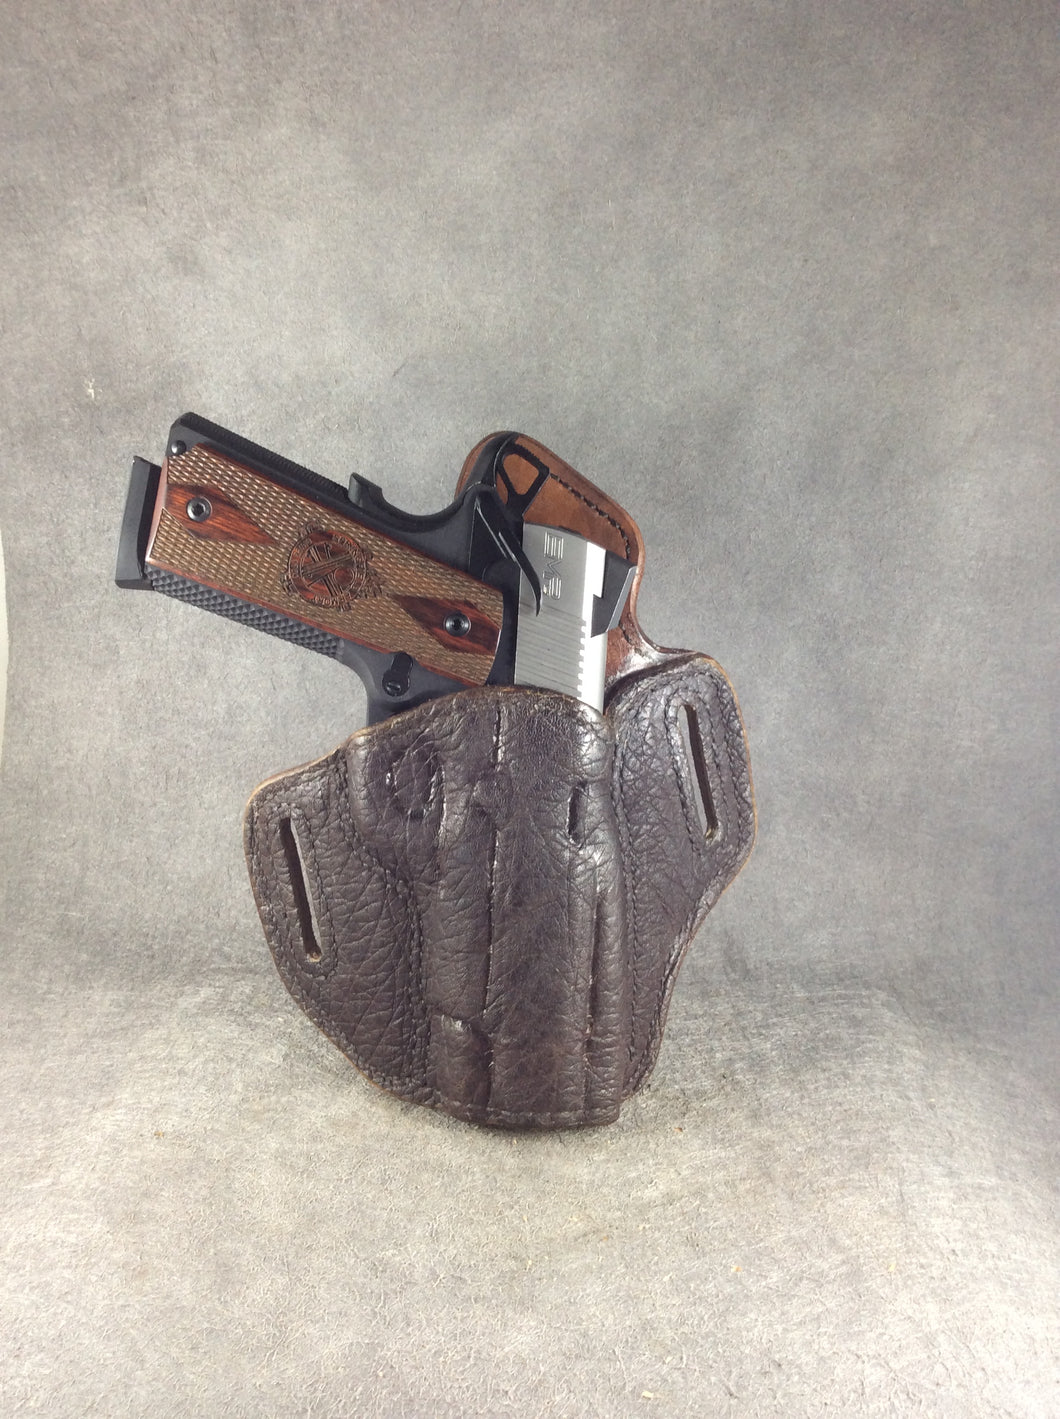 1911 Full Size OWB Custom Pancake Holster Elephant and Leather